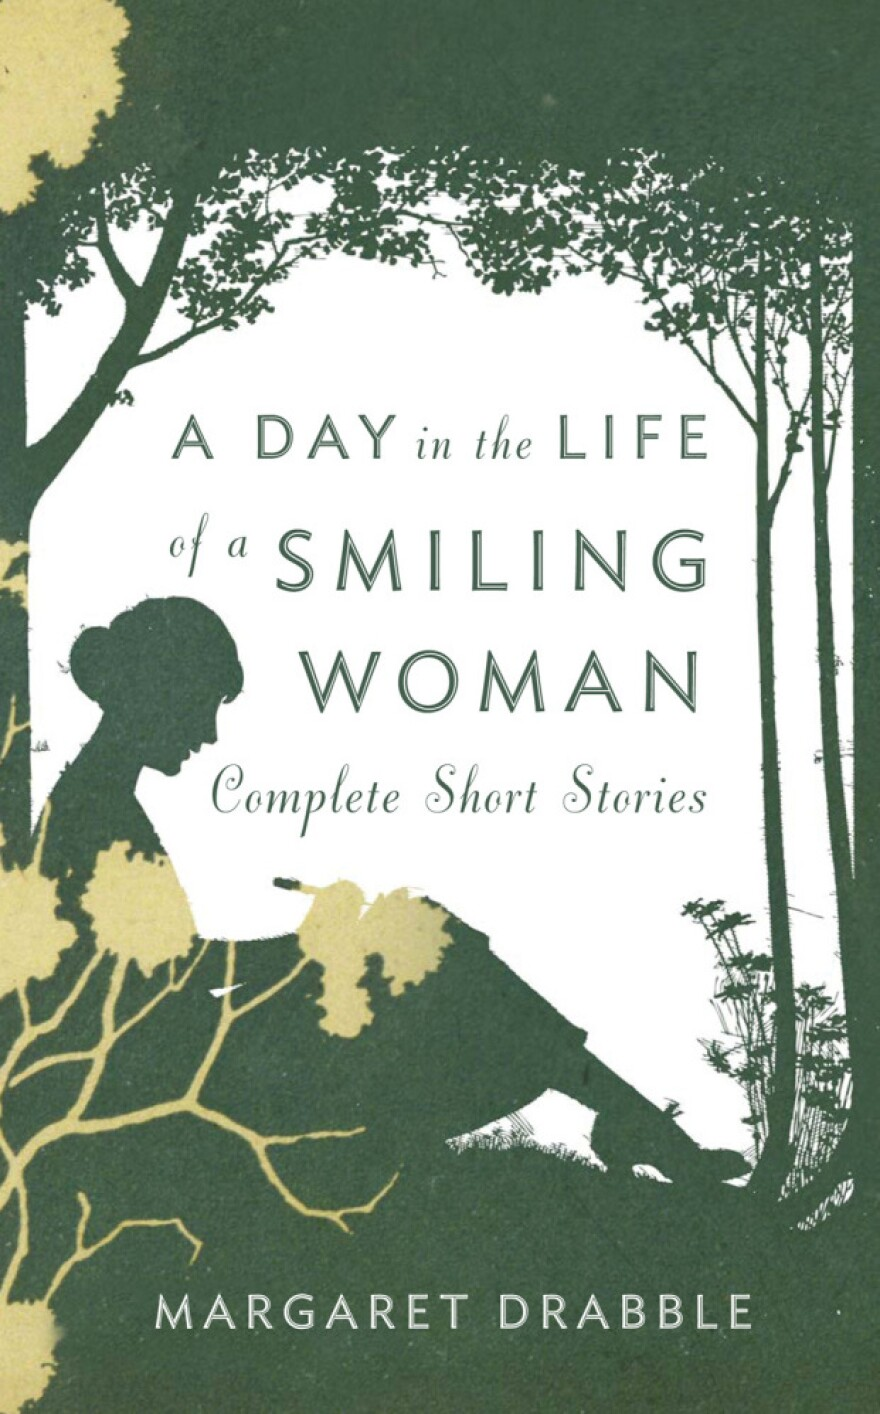 <em>A Day in the Life of a Smiling Woman</em> by Margaret Drabble